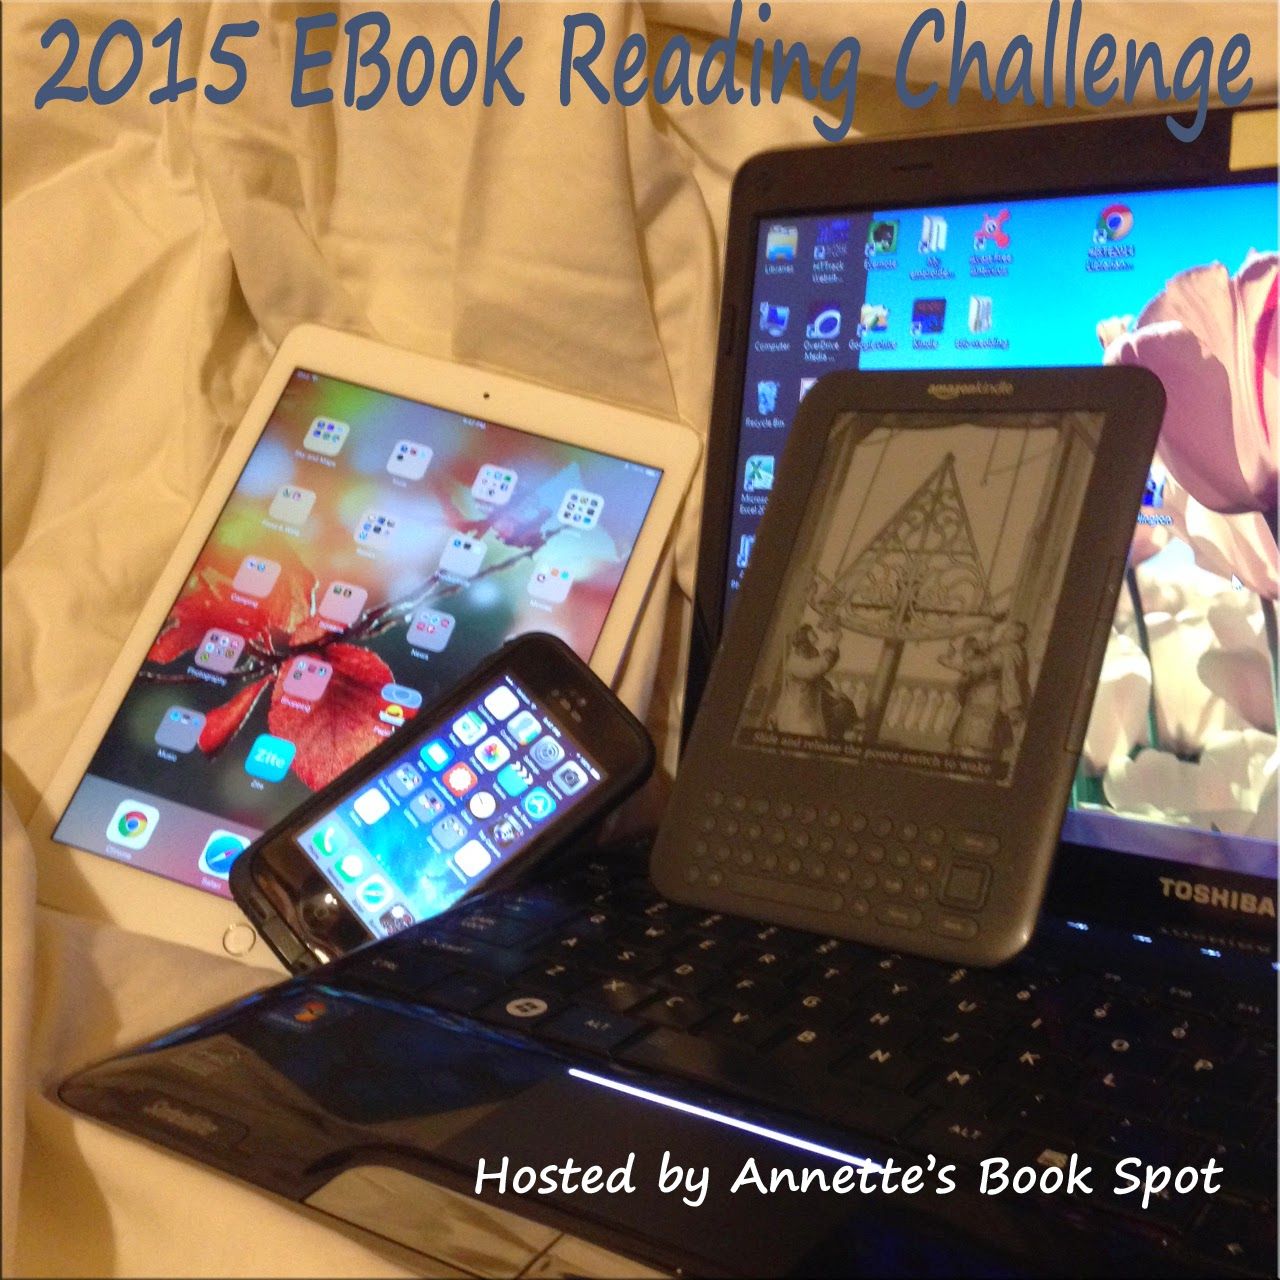 Sign up for 2015 EBook Challenge